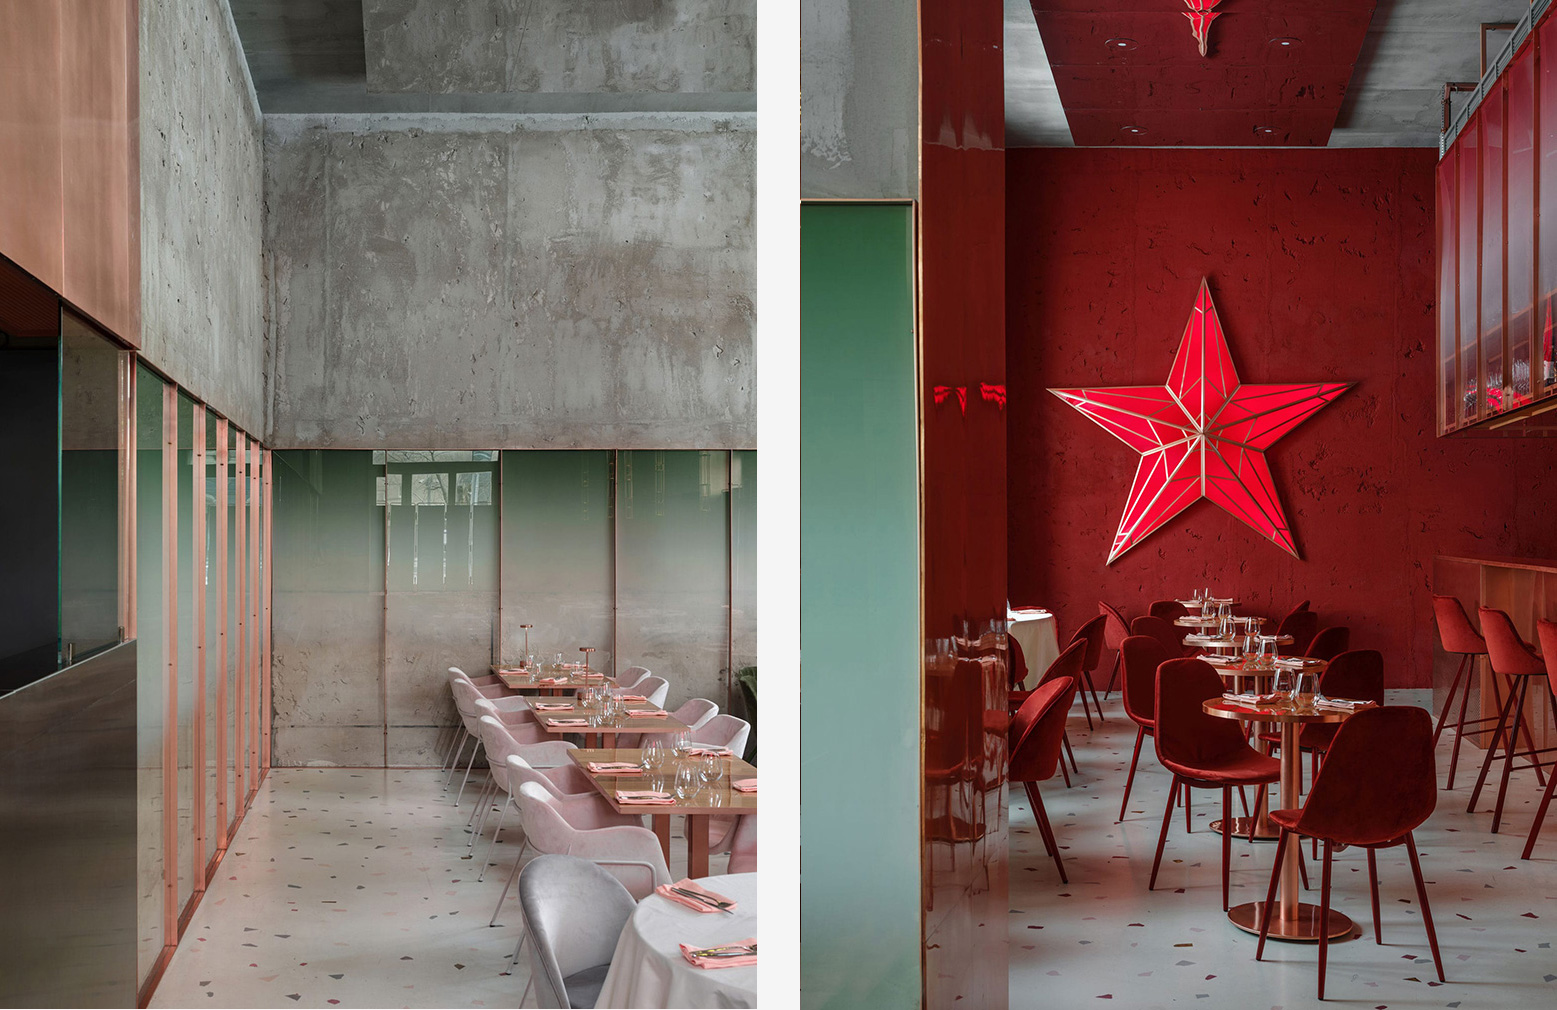 Pastel and concrete reigns supreme at Moscow's Pink Mama restaurant